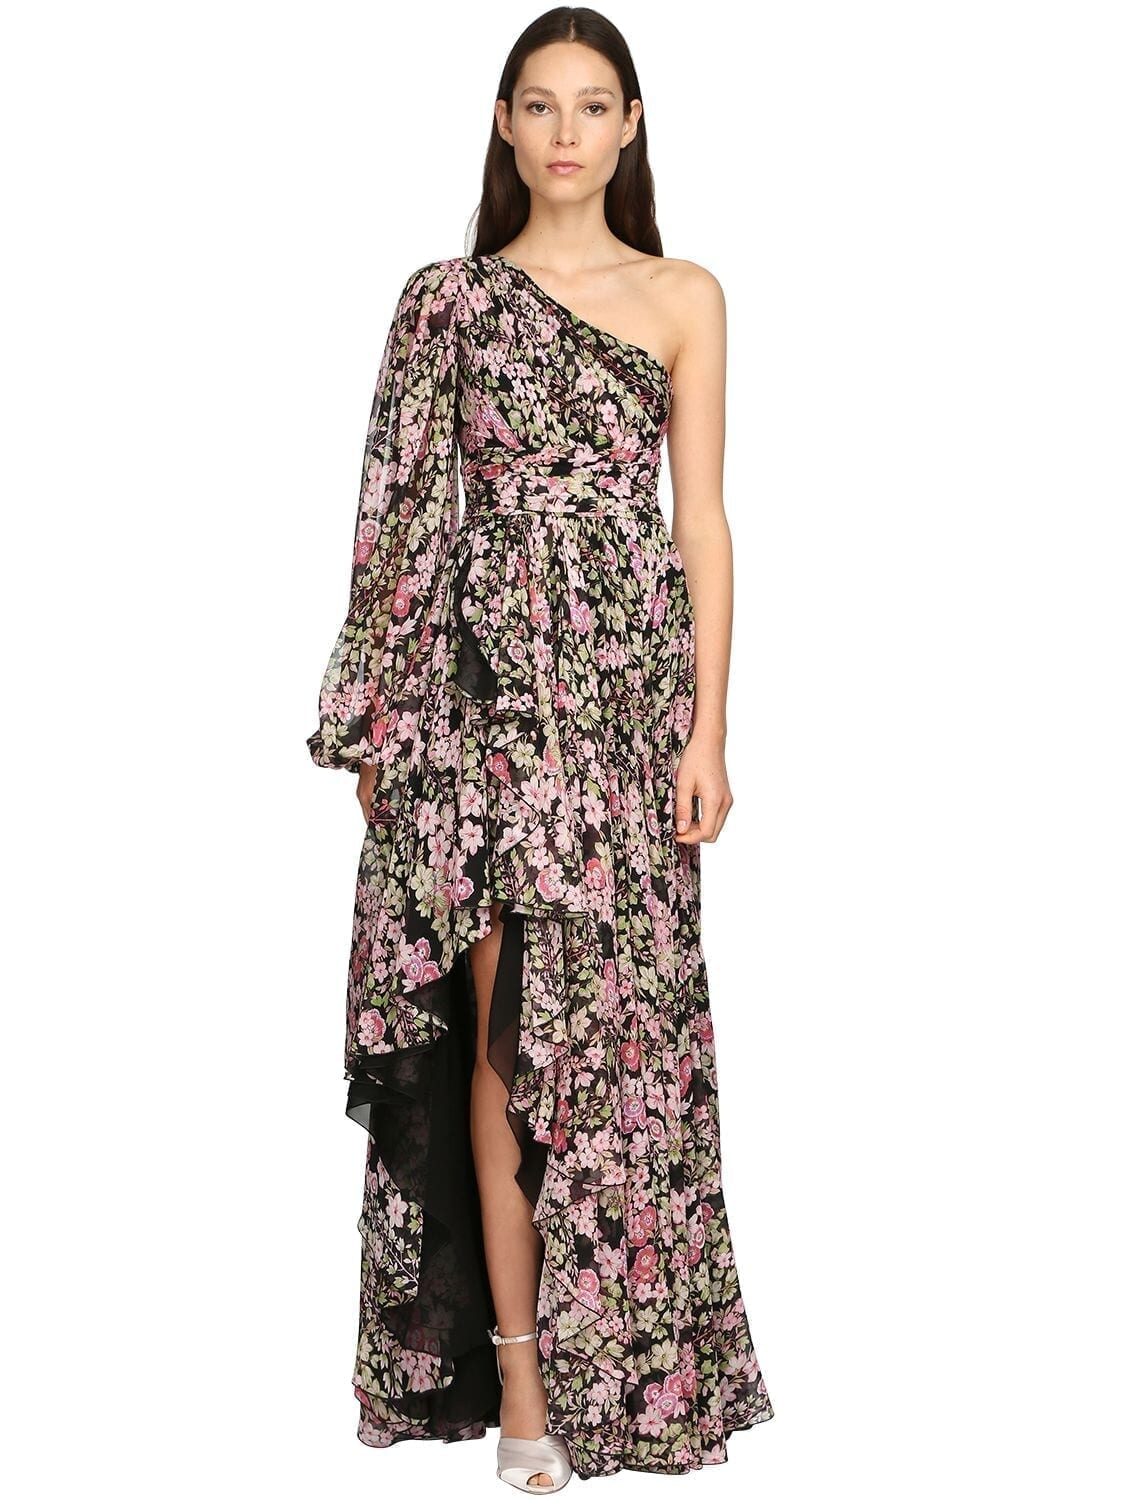 GIAMBATTISTA VALLI Flower Print Silk Georgette Dress